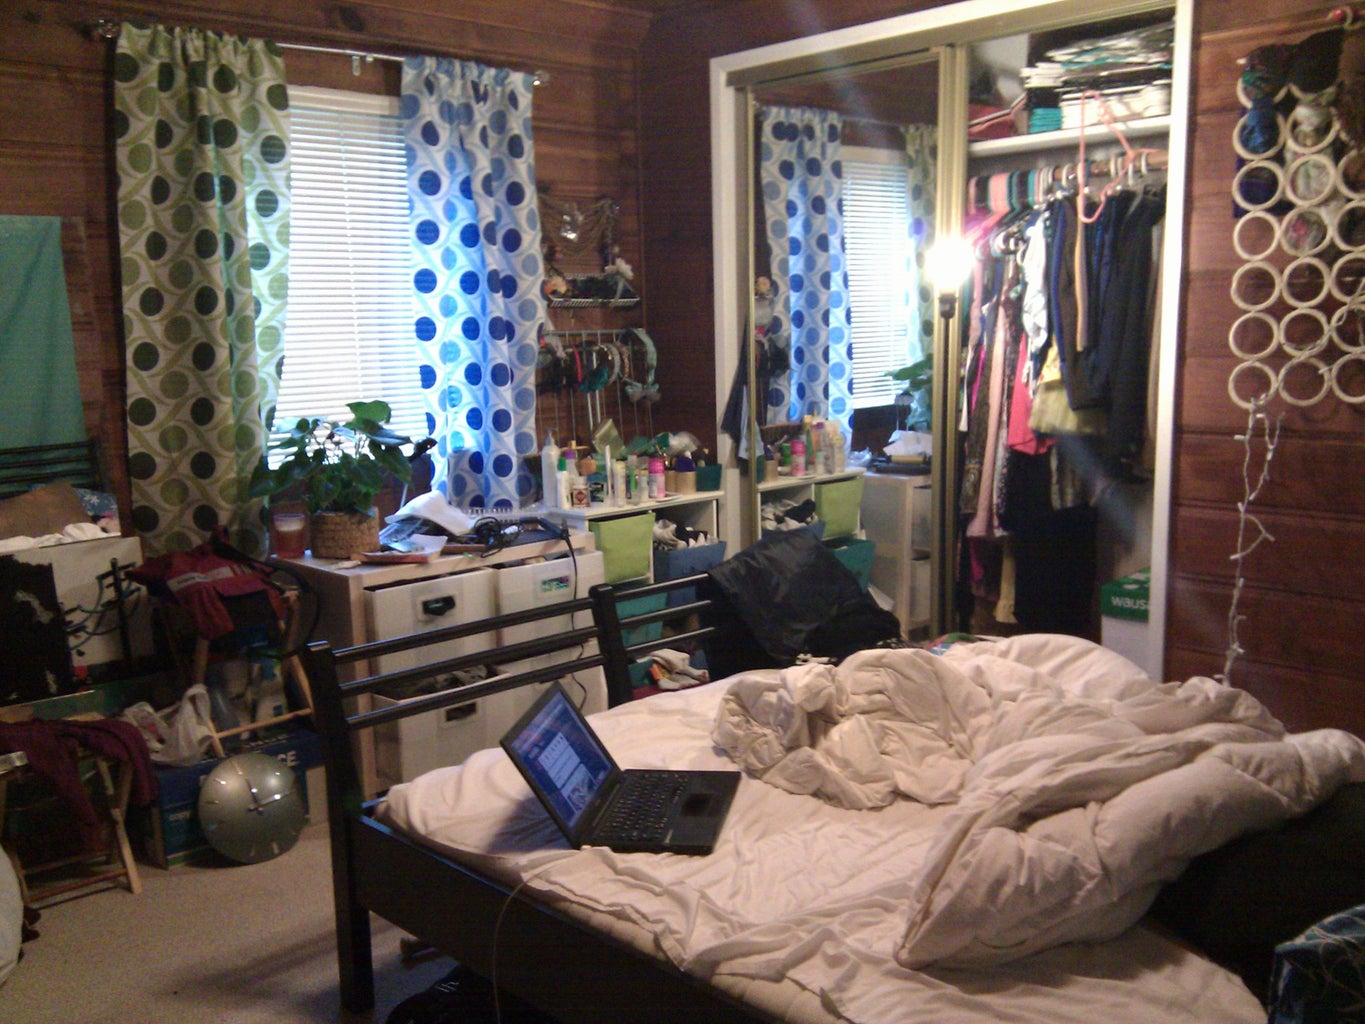 A Cabin Room & a Colorful Girl: HELP. Please Vote for Me!